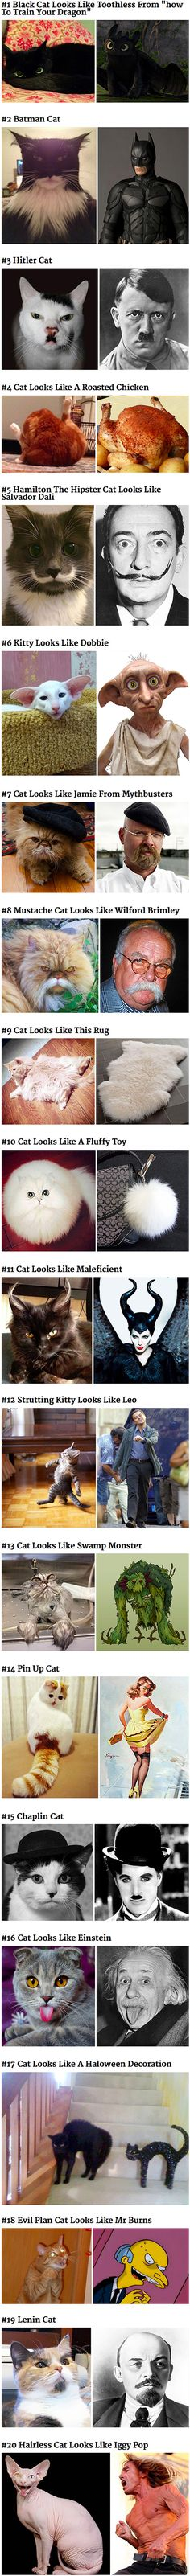 Here is a list of cats that got bored of looking like cats and decided to look like something else instead. Cats are the biggest divas on the internet, so there is no way we have got all the shape-shifting felines in the world in this list.